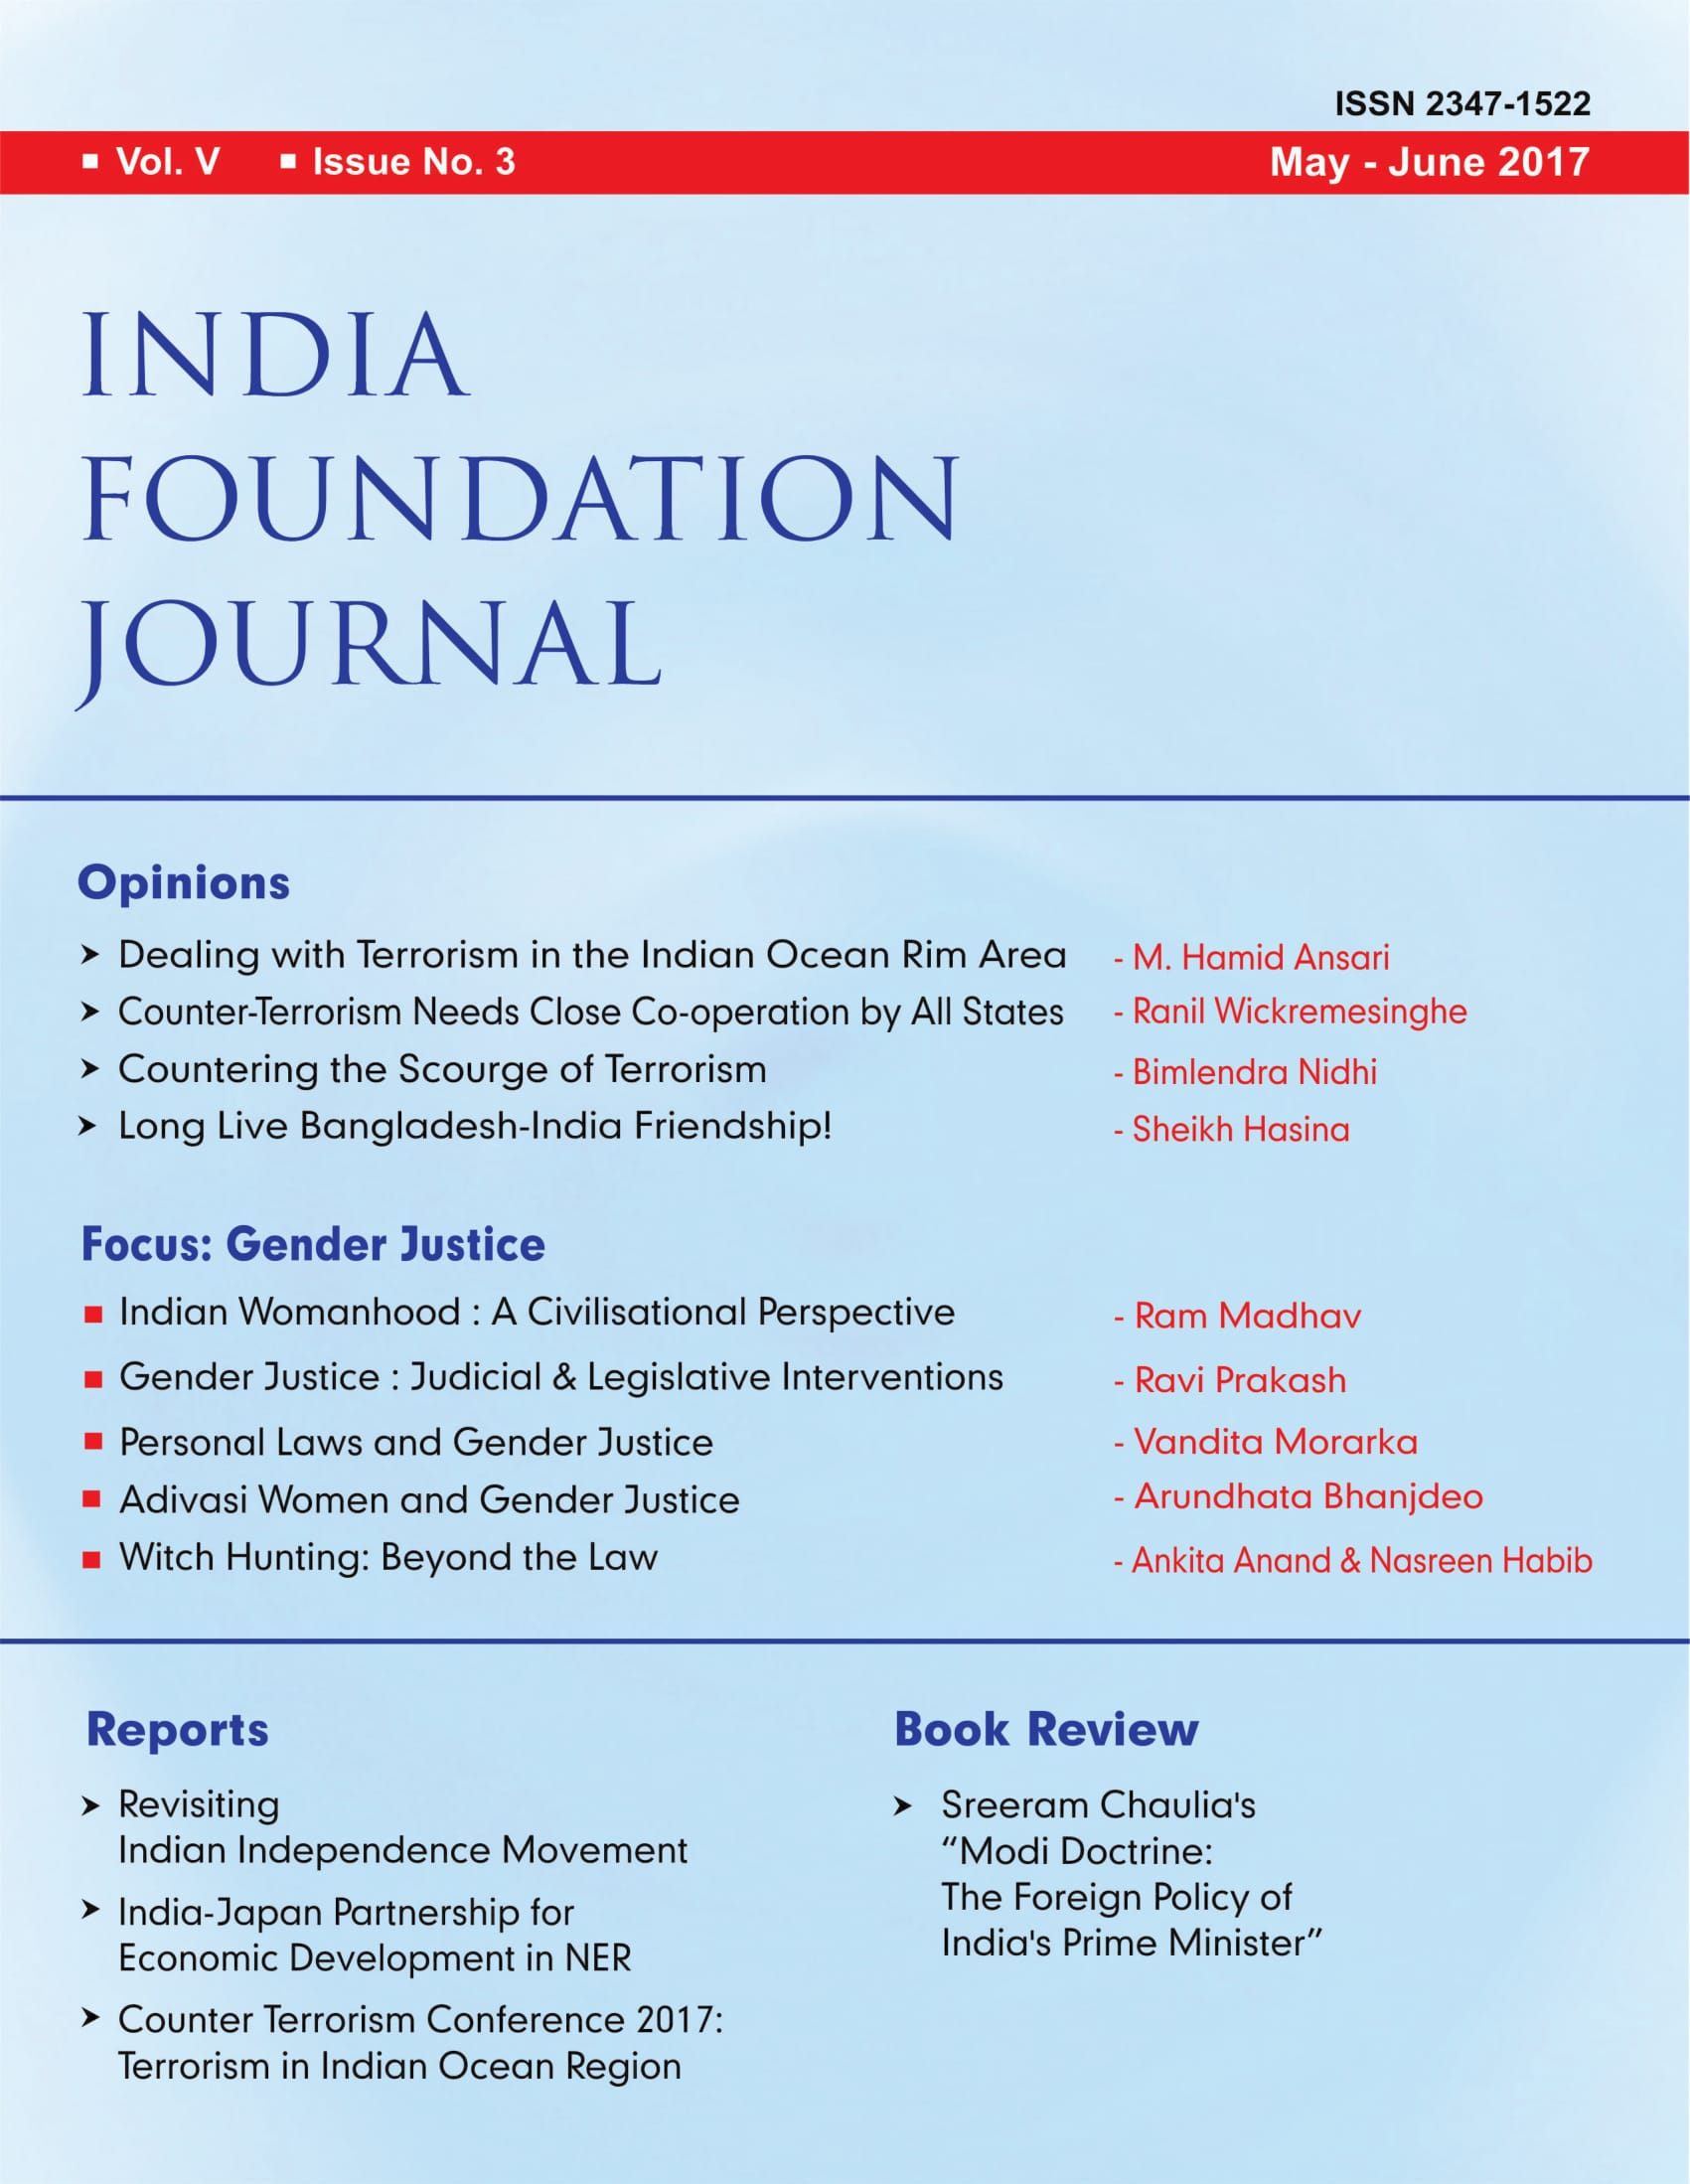 India Foundation Journal Issue No. 3 (Vol V)